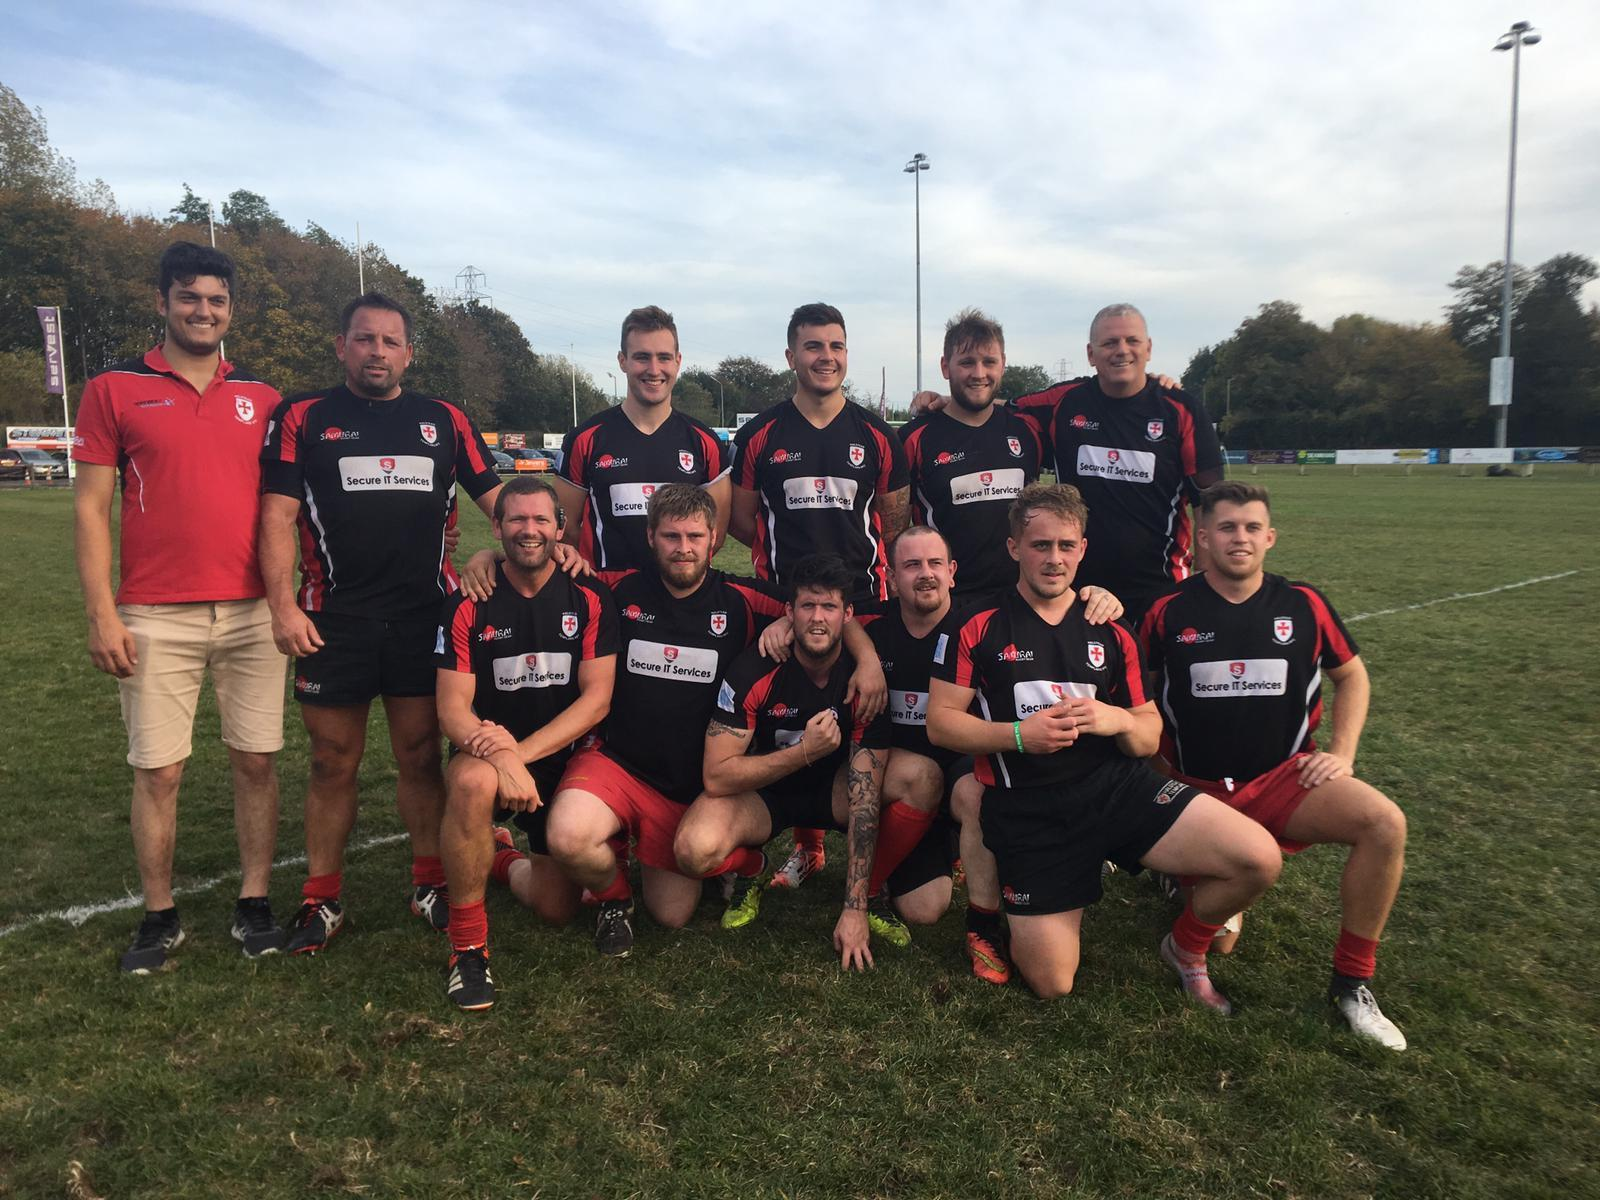 History makers: Halstead Templars' second team of (back row) Ivan Fellowes, Craig Trevain, Tom Amass, Dylan Moss, Louis Pulford, Phil Foster, (front row) Ed Merry, Charlie Cooper, Joe Harrison, Danny Ball, Jack Pawsey and Elliott Wincott.